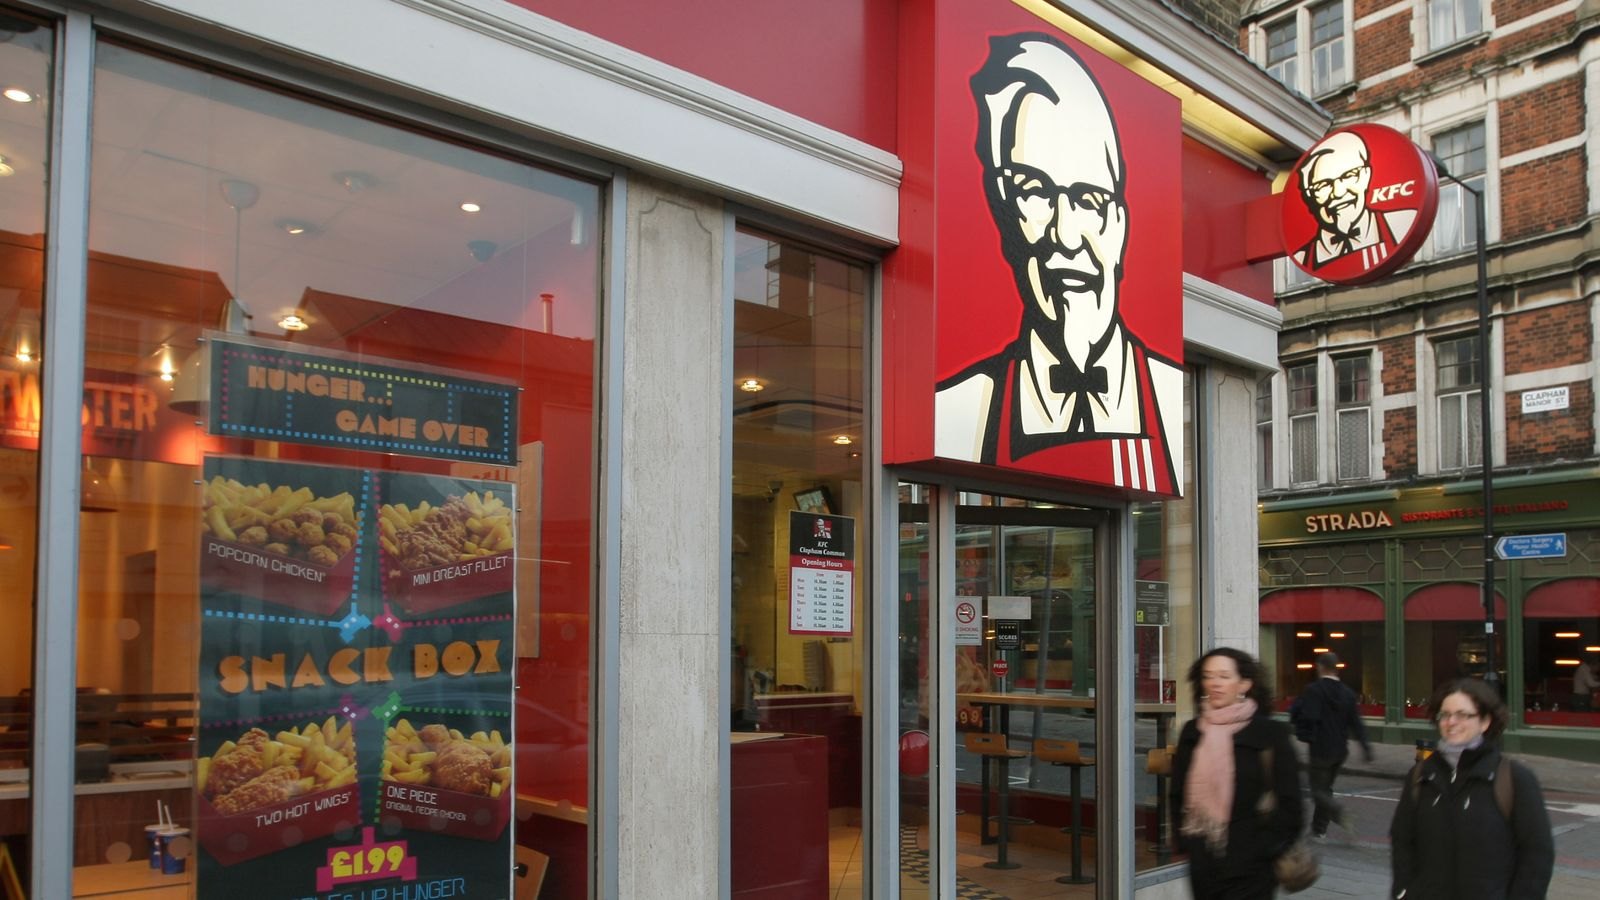 Fast Food Restaurants That Have Been Closed